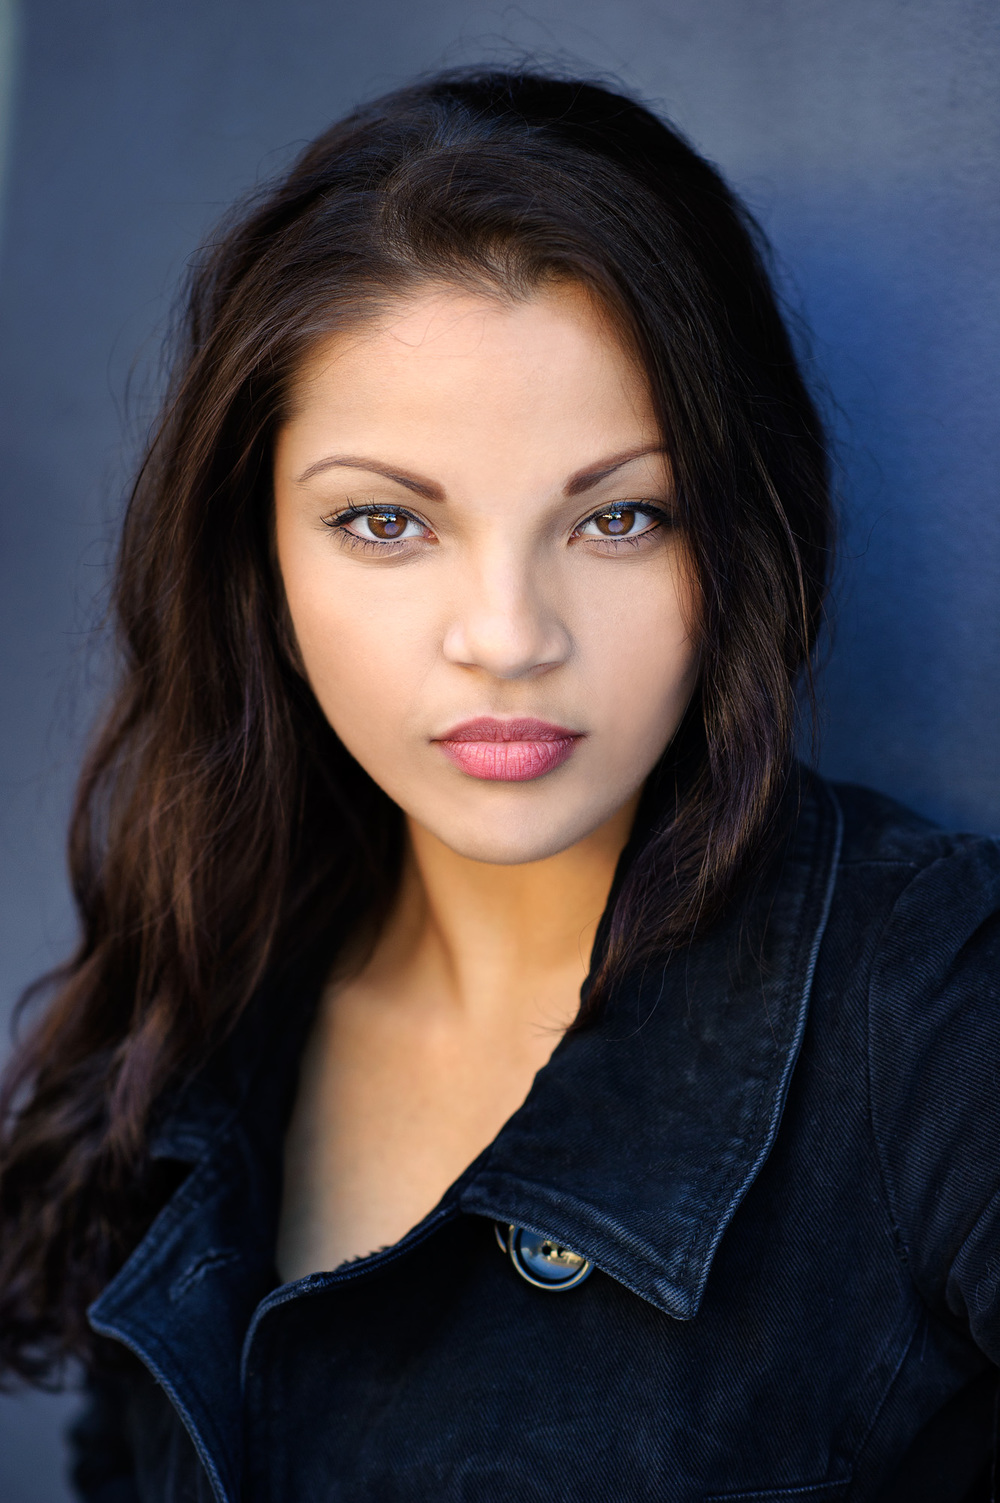 Annikki Chand - Actress Headshot